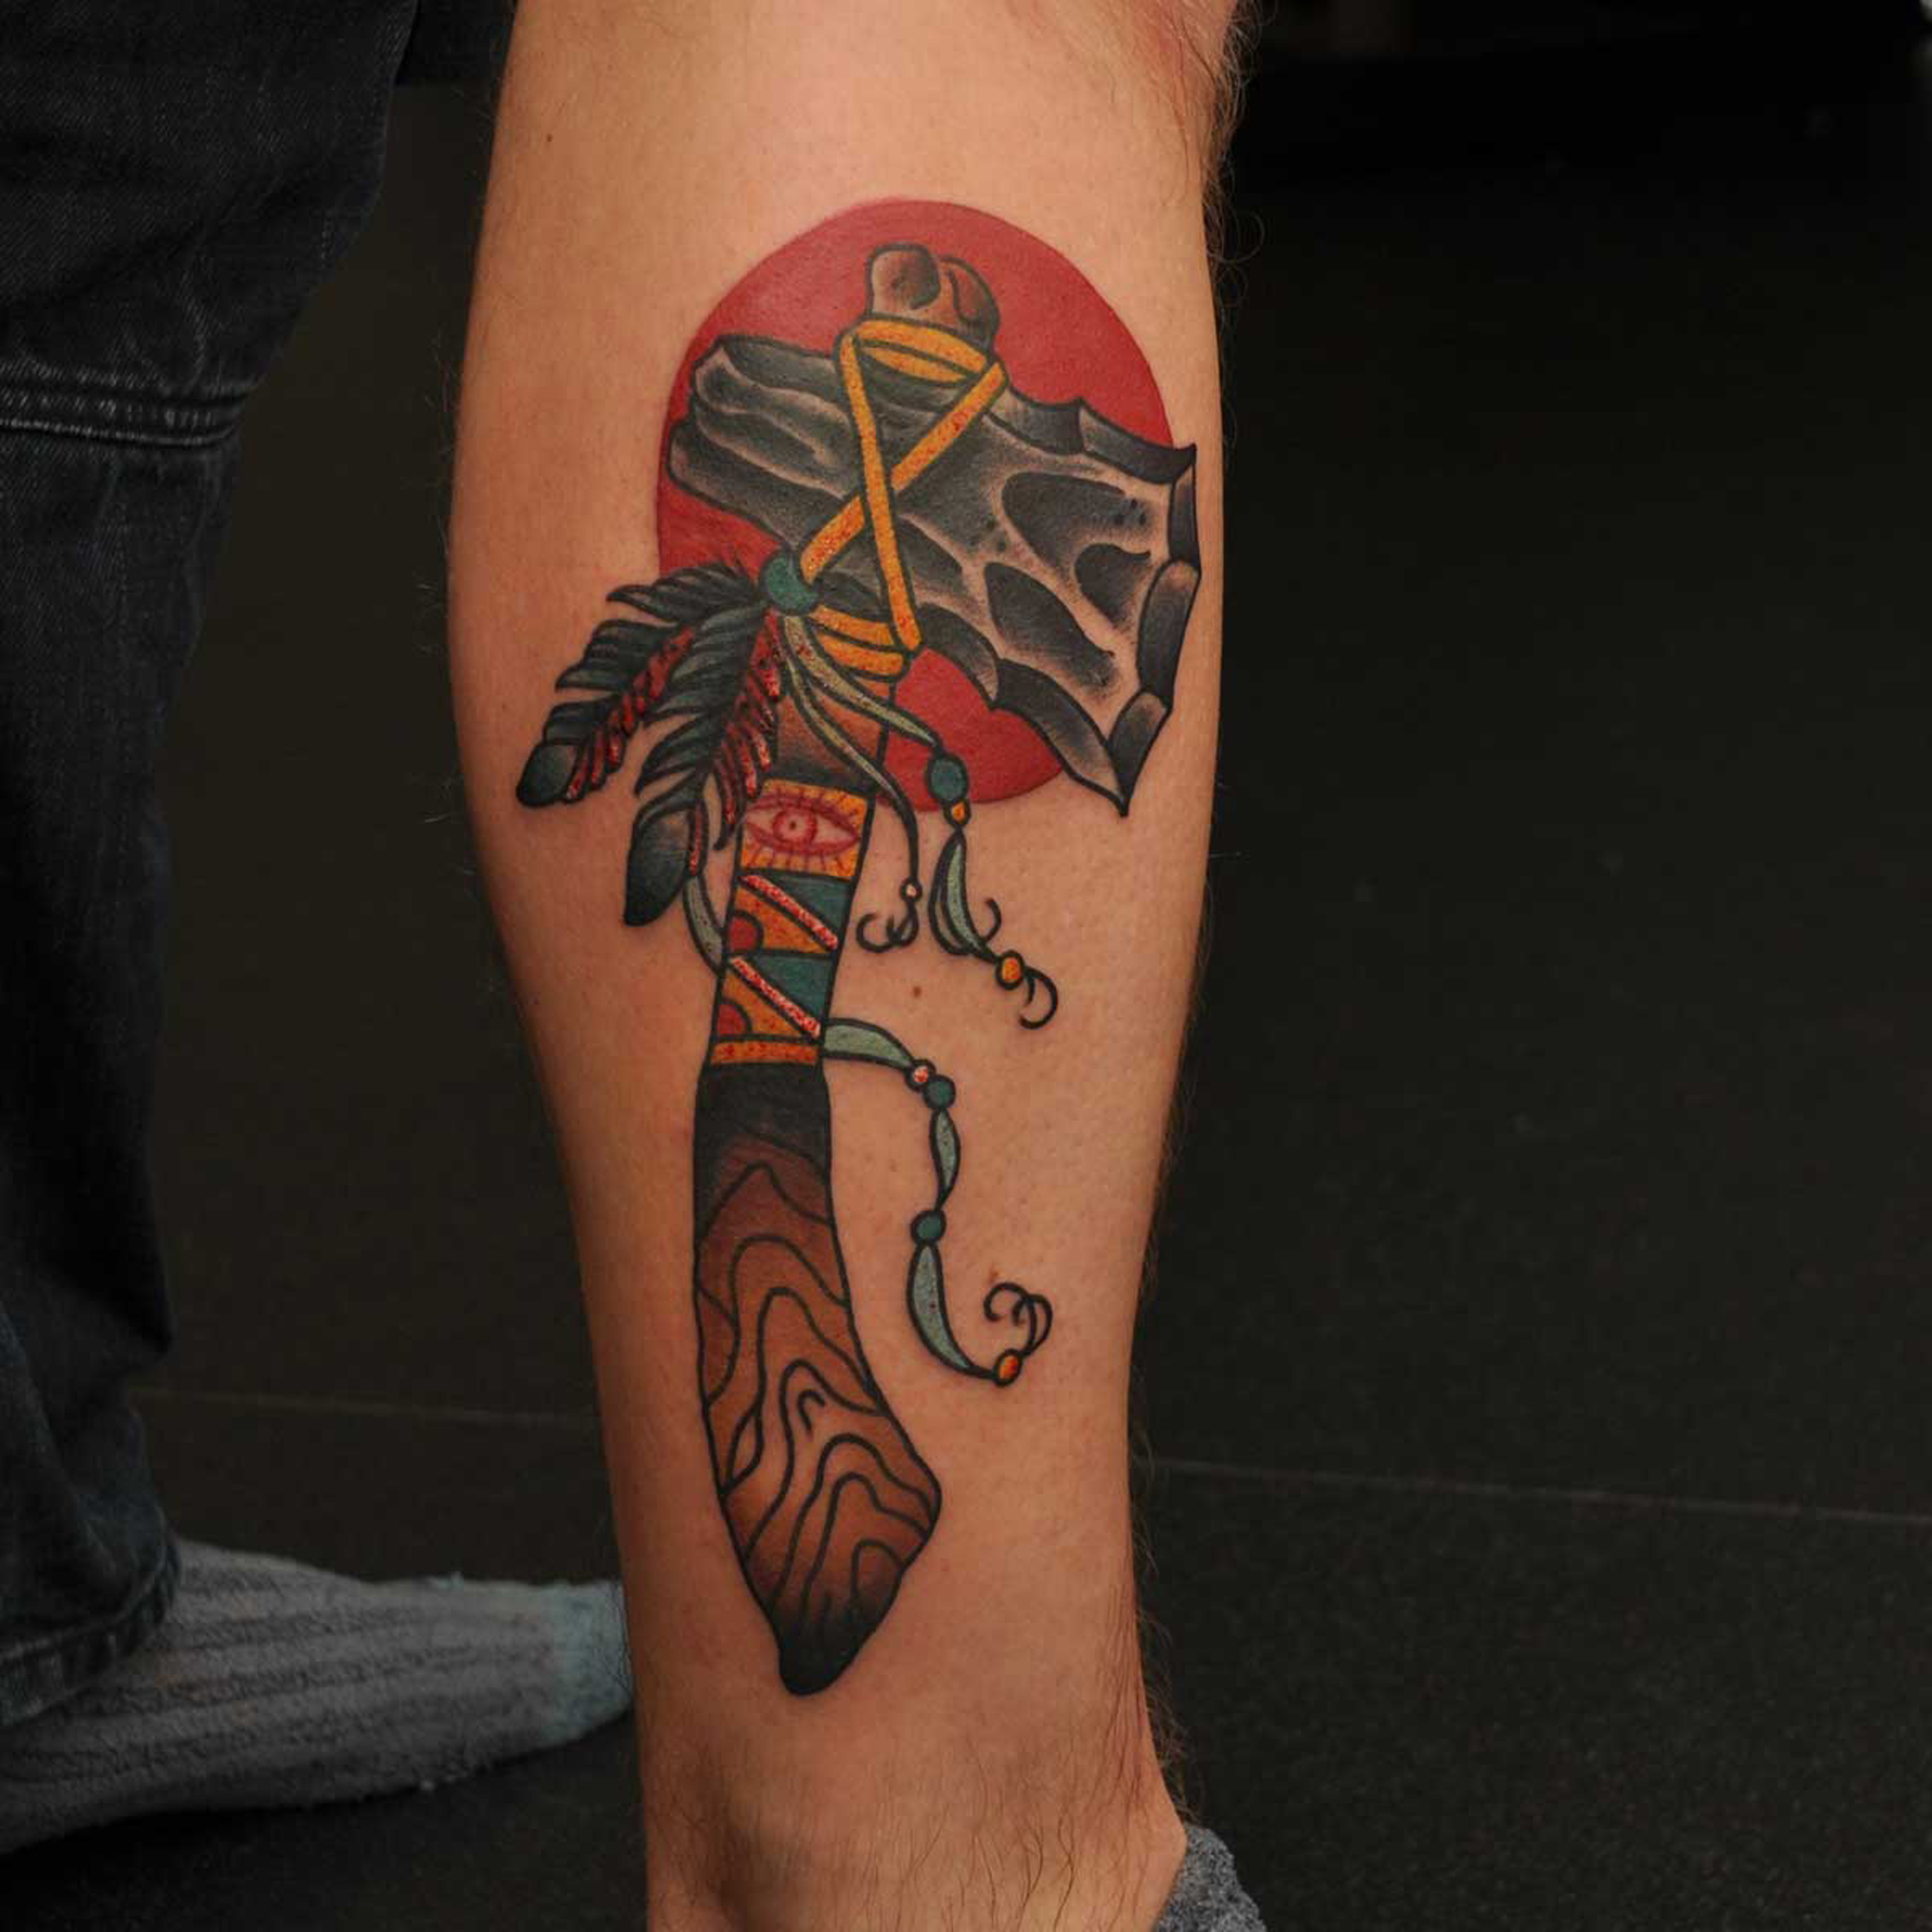 Tomahawk Tattoo Designs, Ideas And Meaning